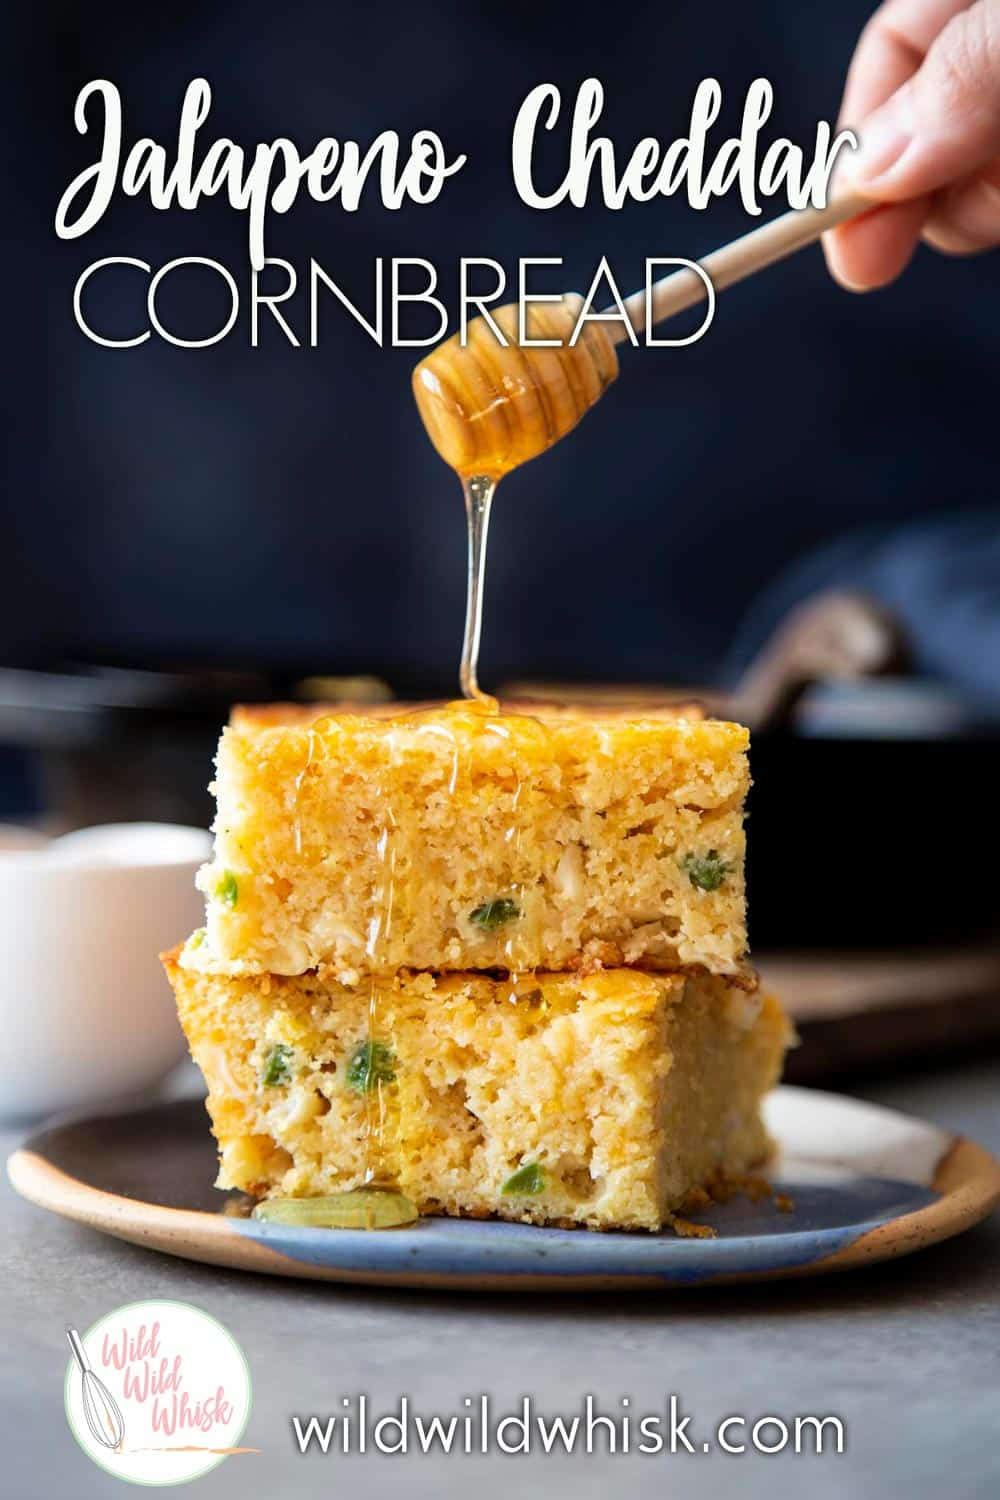 Easy and cheesy Jalapeño Cheddar Cornbread is loaded with shredded cheddar cheese and jalapeño pieces, baked in a cast iron skillet. #wildwildwhisk #cornbread